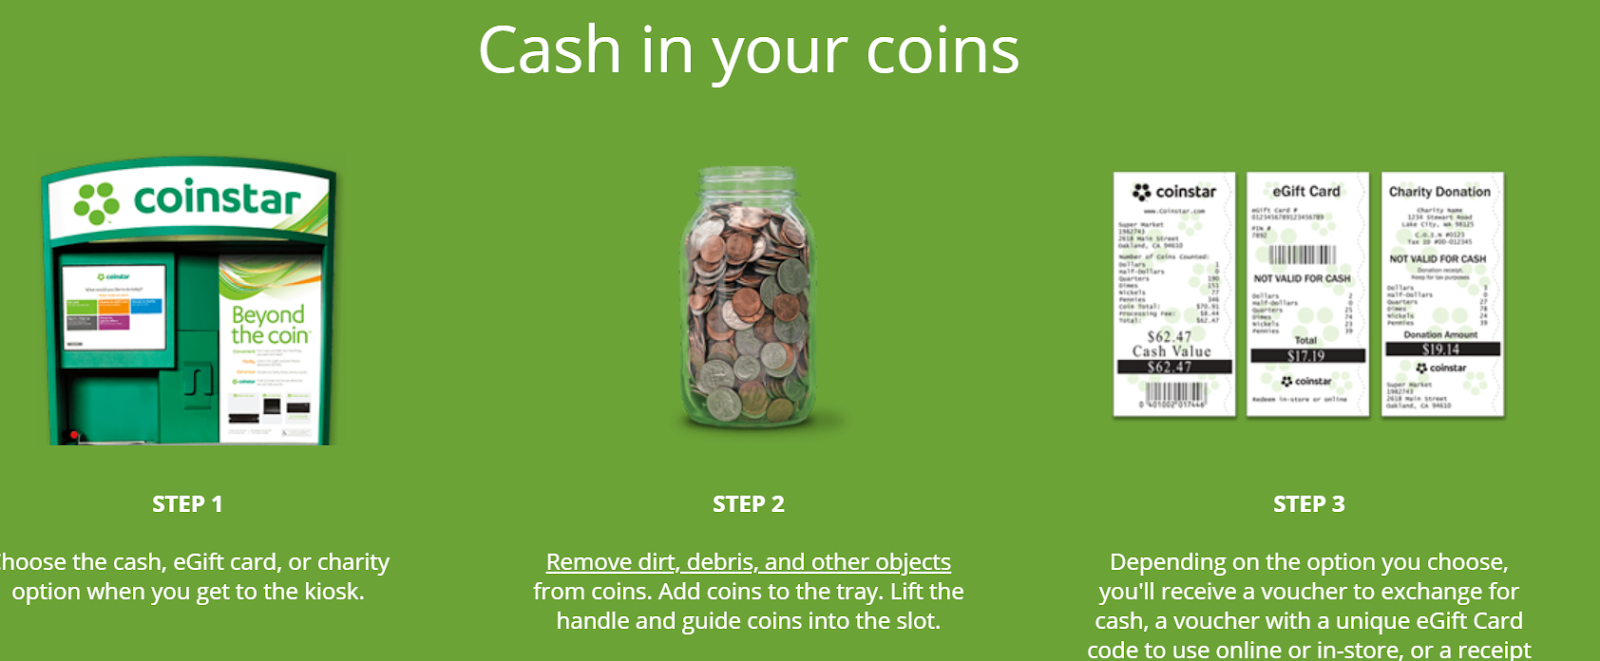 how to find a coinstar near me